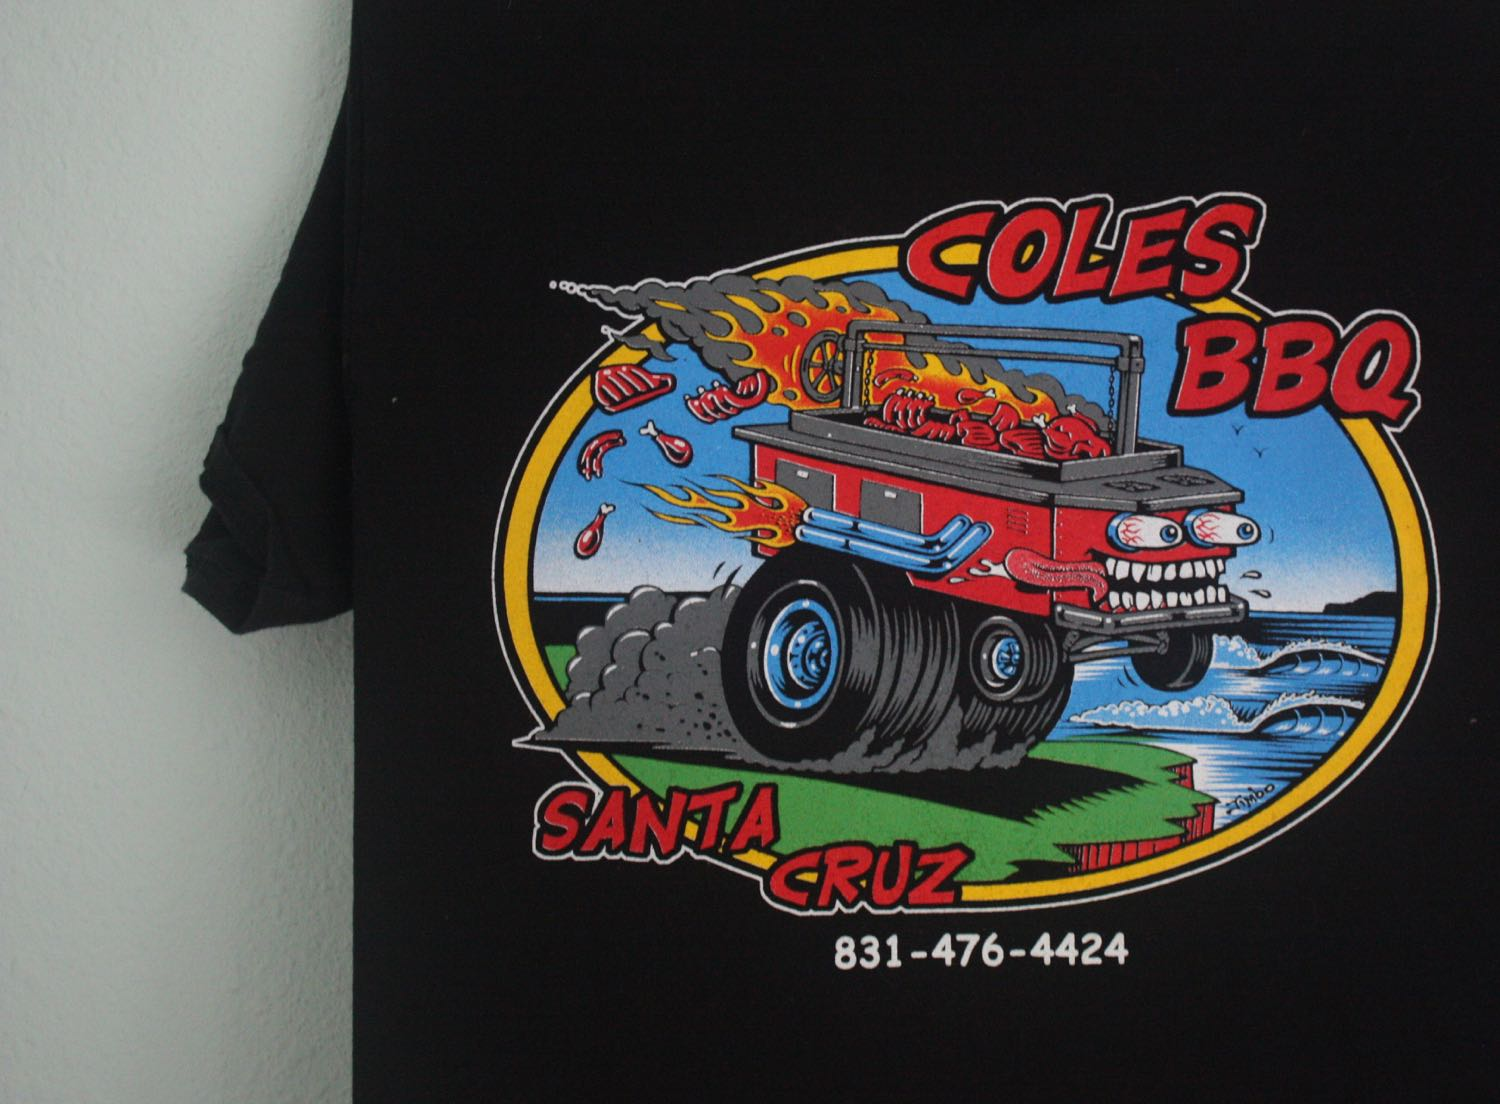 Santa Cruz Coles BBQ Roth Style Tee by Jimbo Phillips